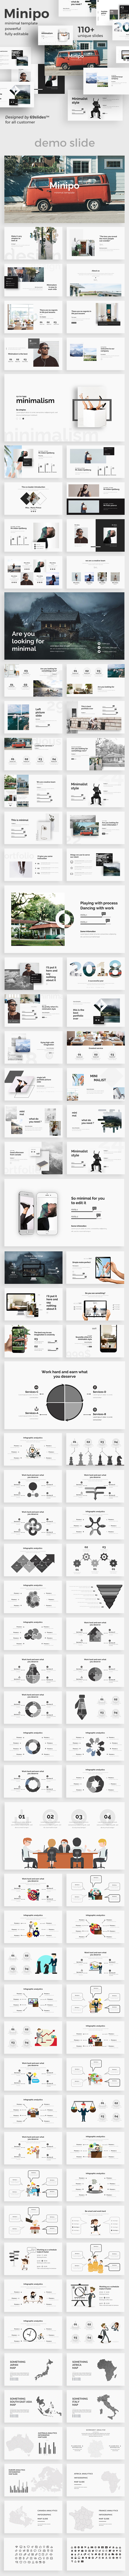 Minipo Creative Keynote Template - Creative Keynote Templates